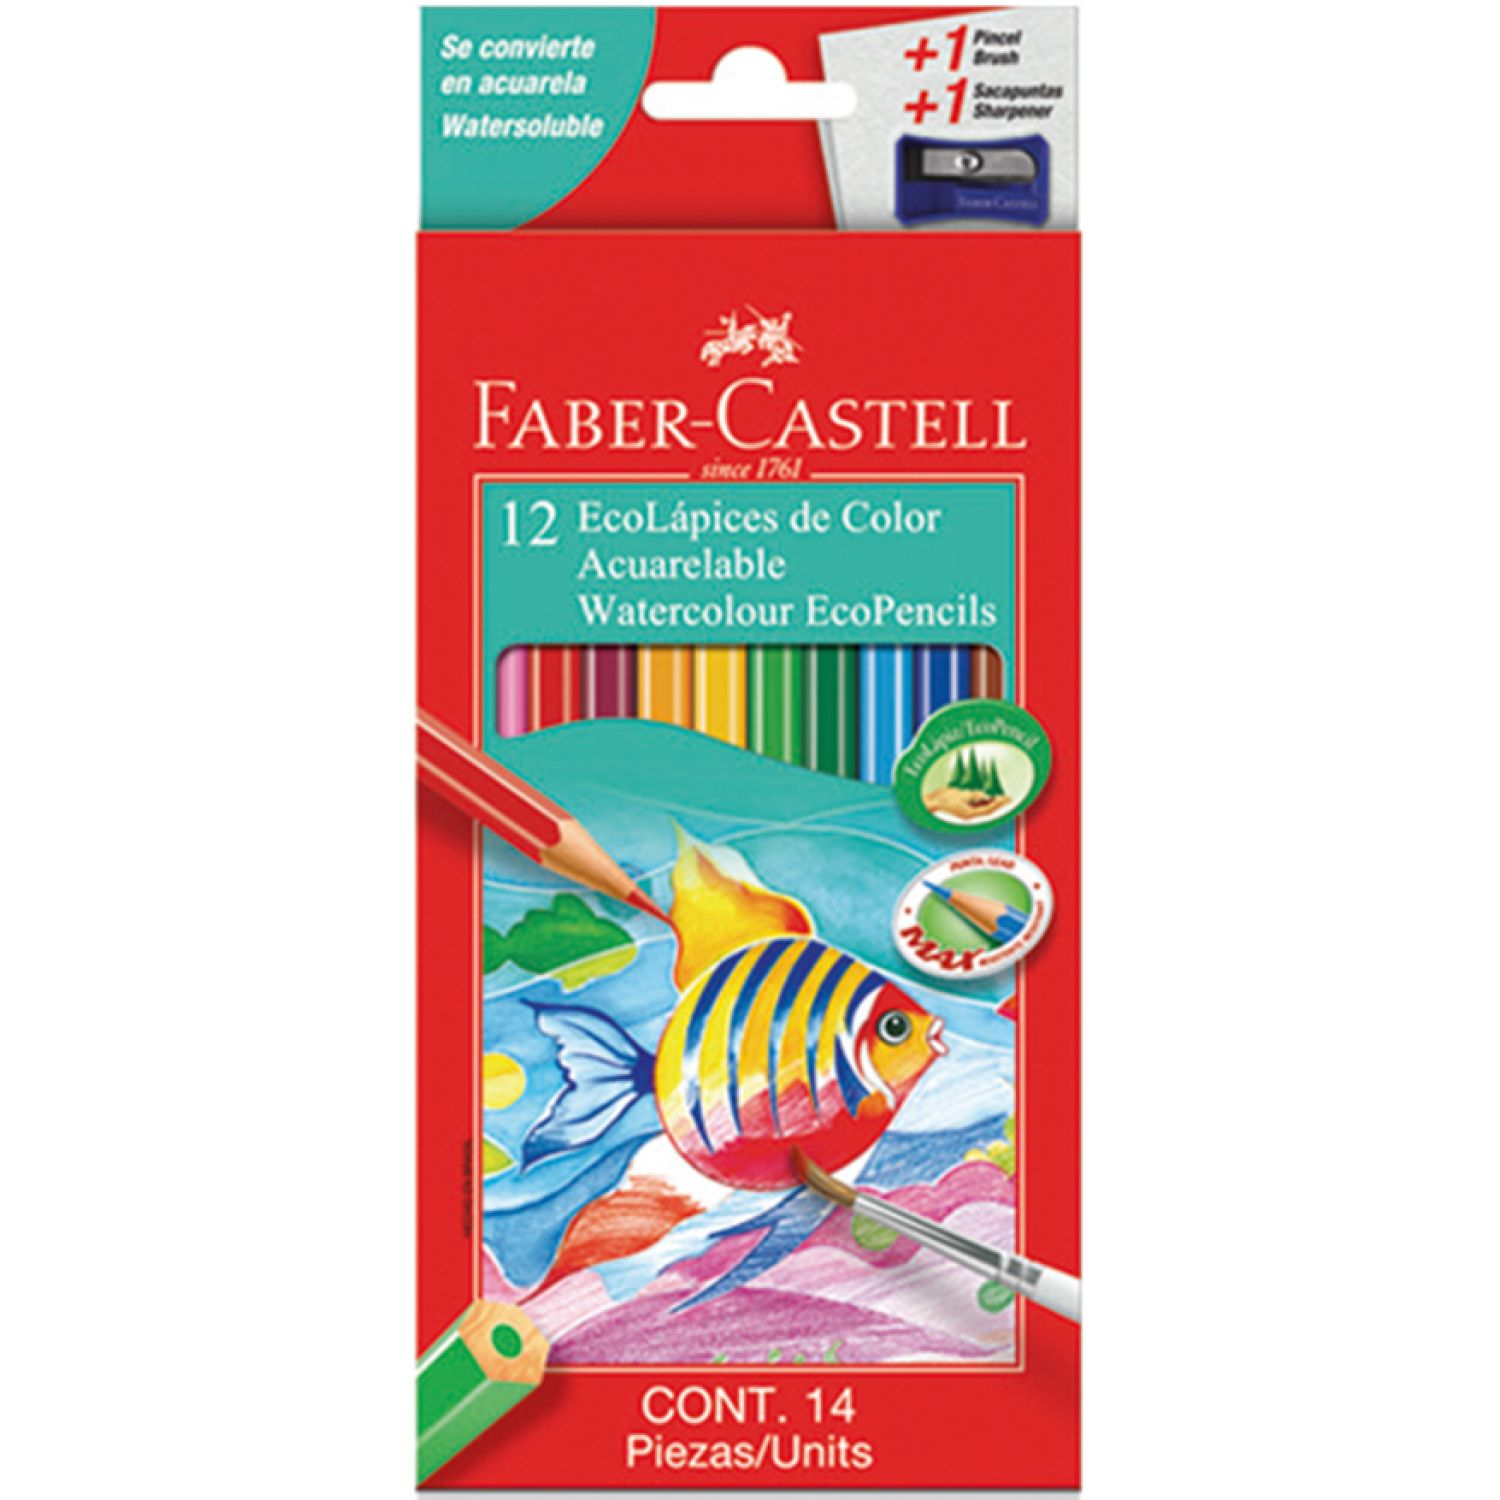 FABER CASTELL ECOLAPIZ DE COLOR ACUARELABLE X12 Varios Lápices coloreados